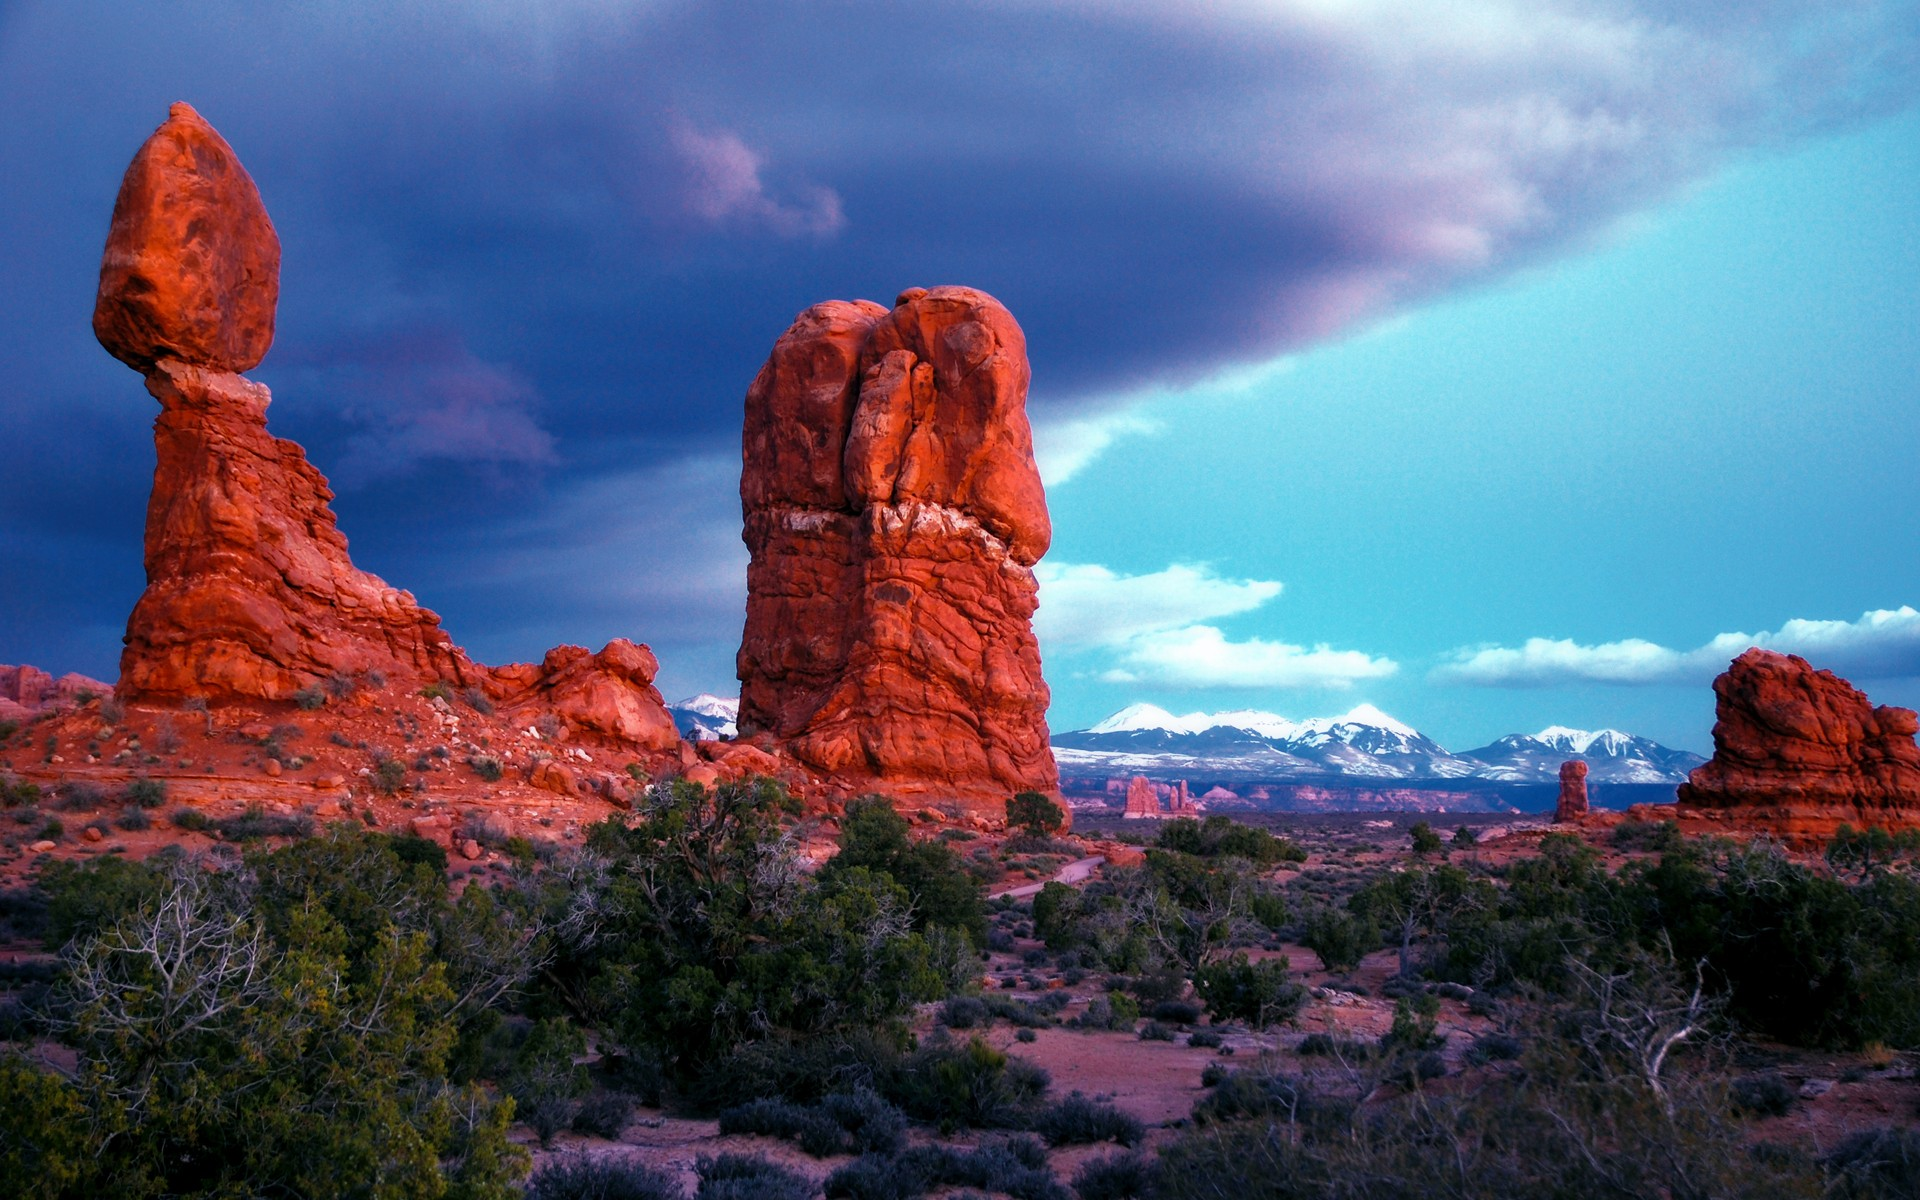 Iphone 4 Animated Wallpaper Mountains Rocks Desert Plants Wallpapers Mountains Rocks